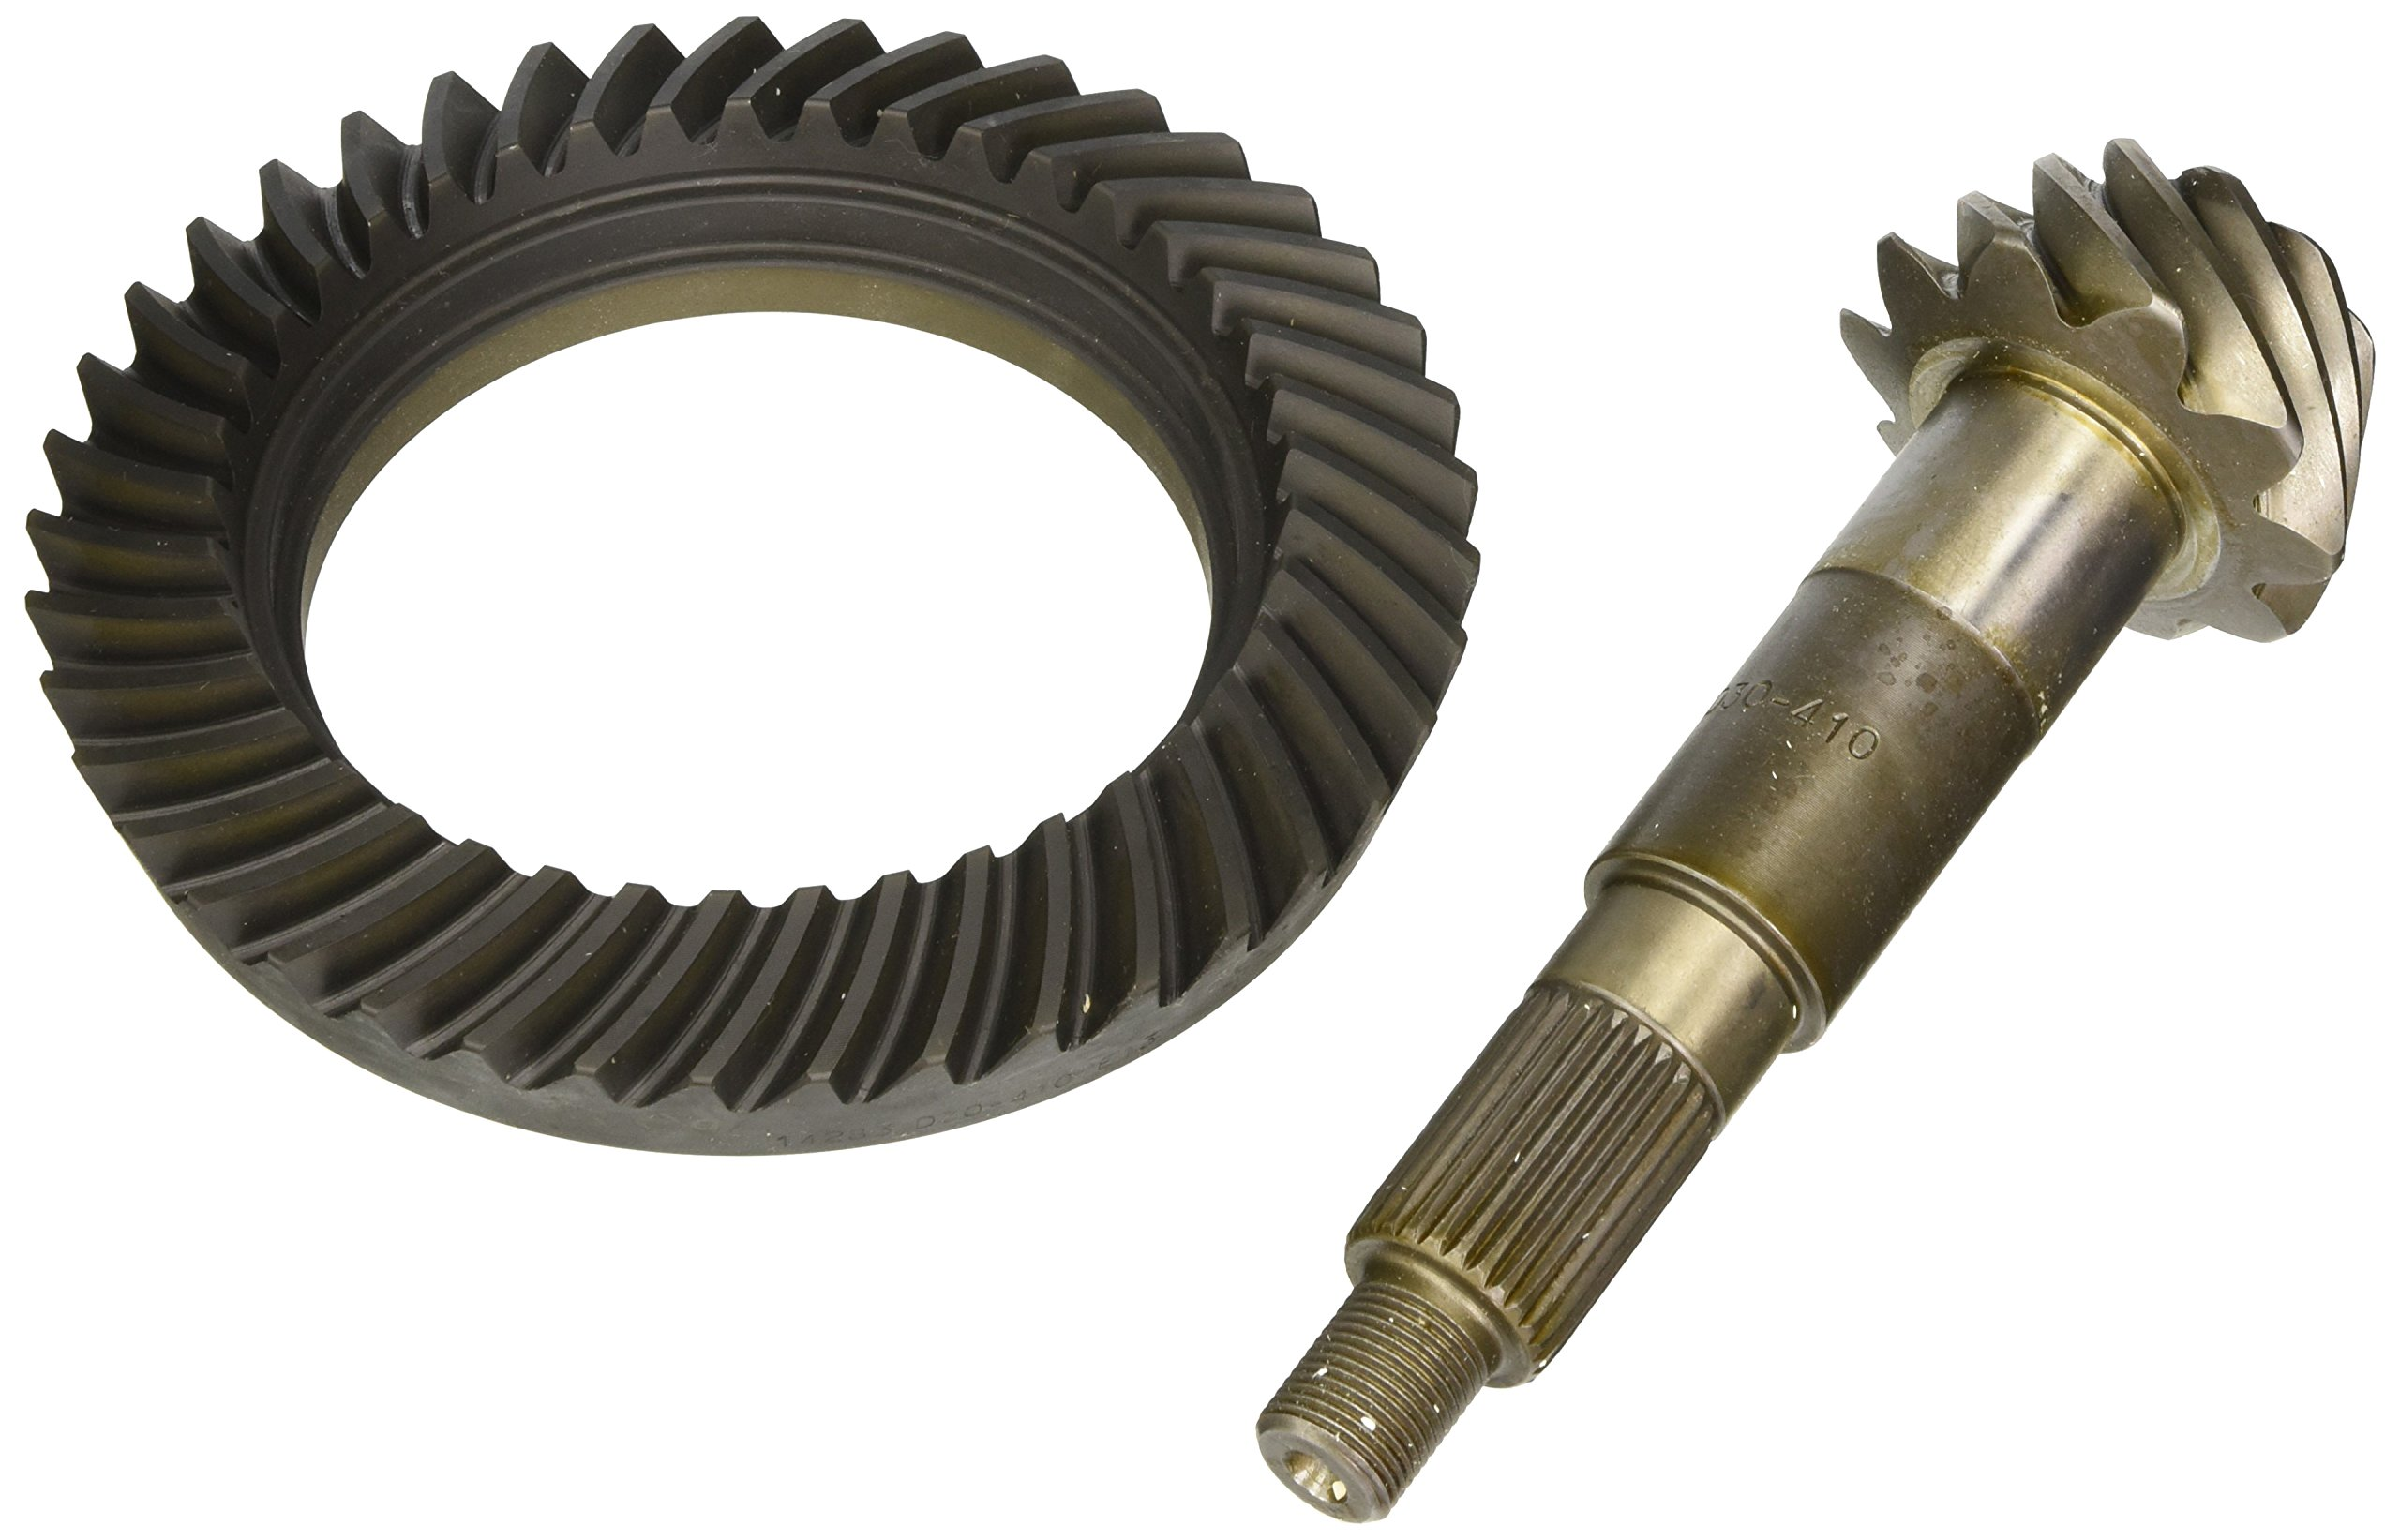 Motive Gear D30-410 Ring and Pinion (DANA 30 Style, 4.10 Ratio, Standard) by Motive Gear